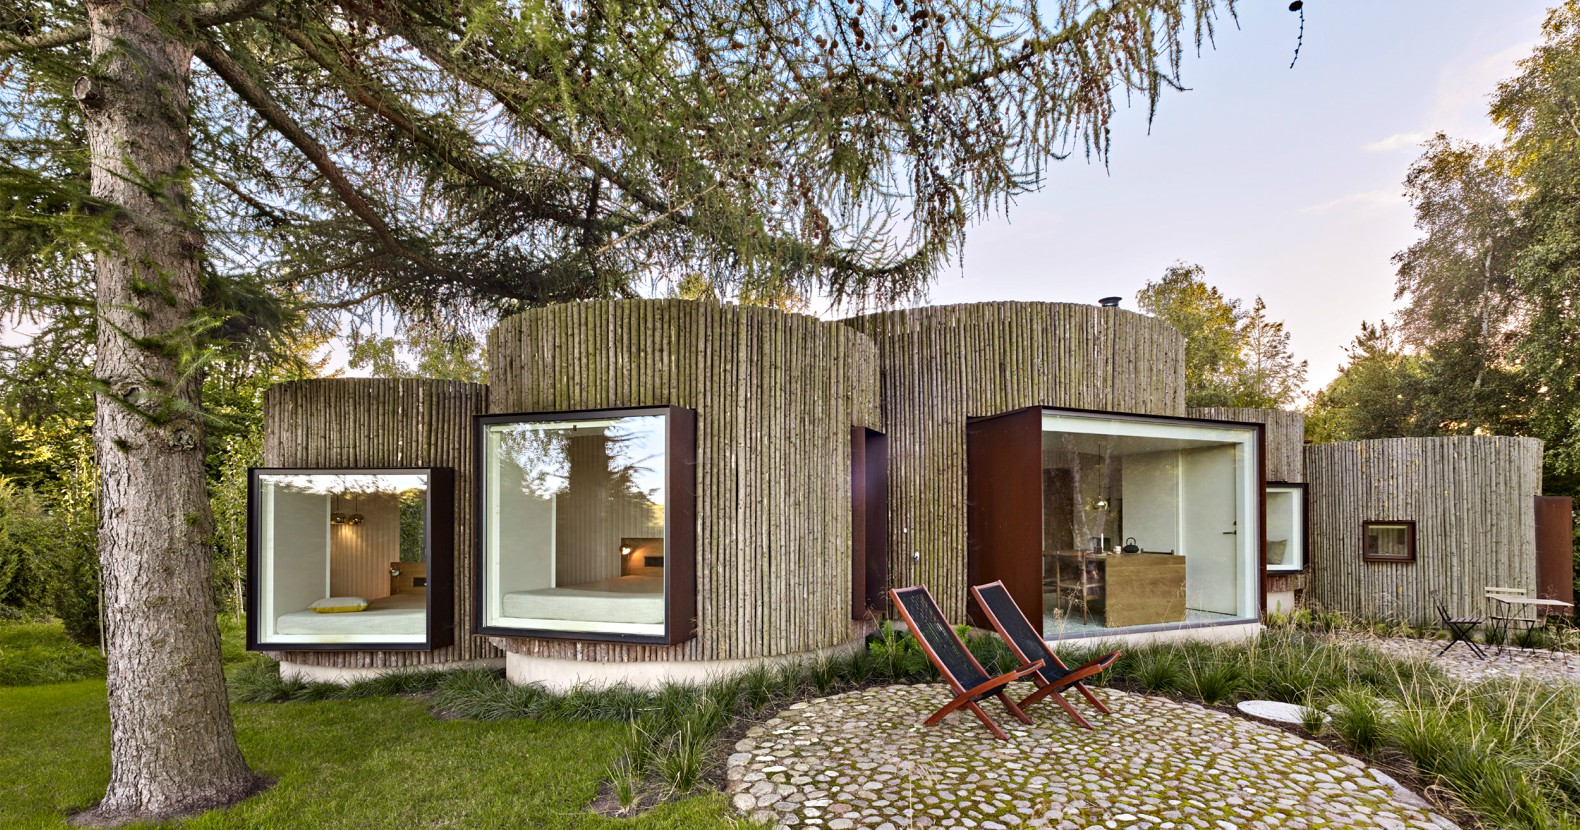 Tiny House Vacation Rentals You Can Rent This Cylindrical Log Cabin On Denmark S